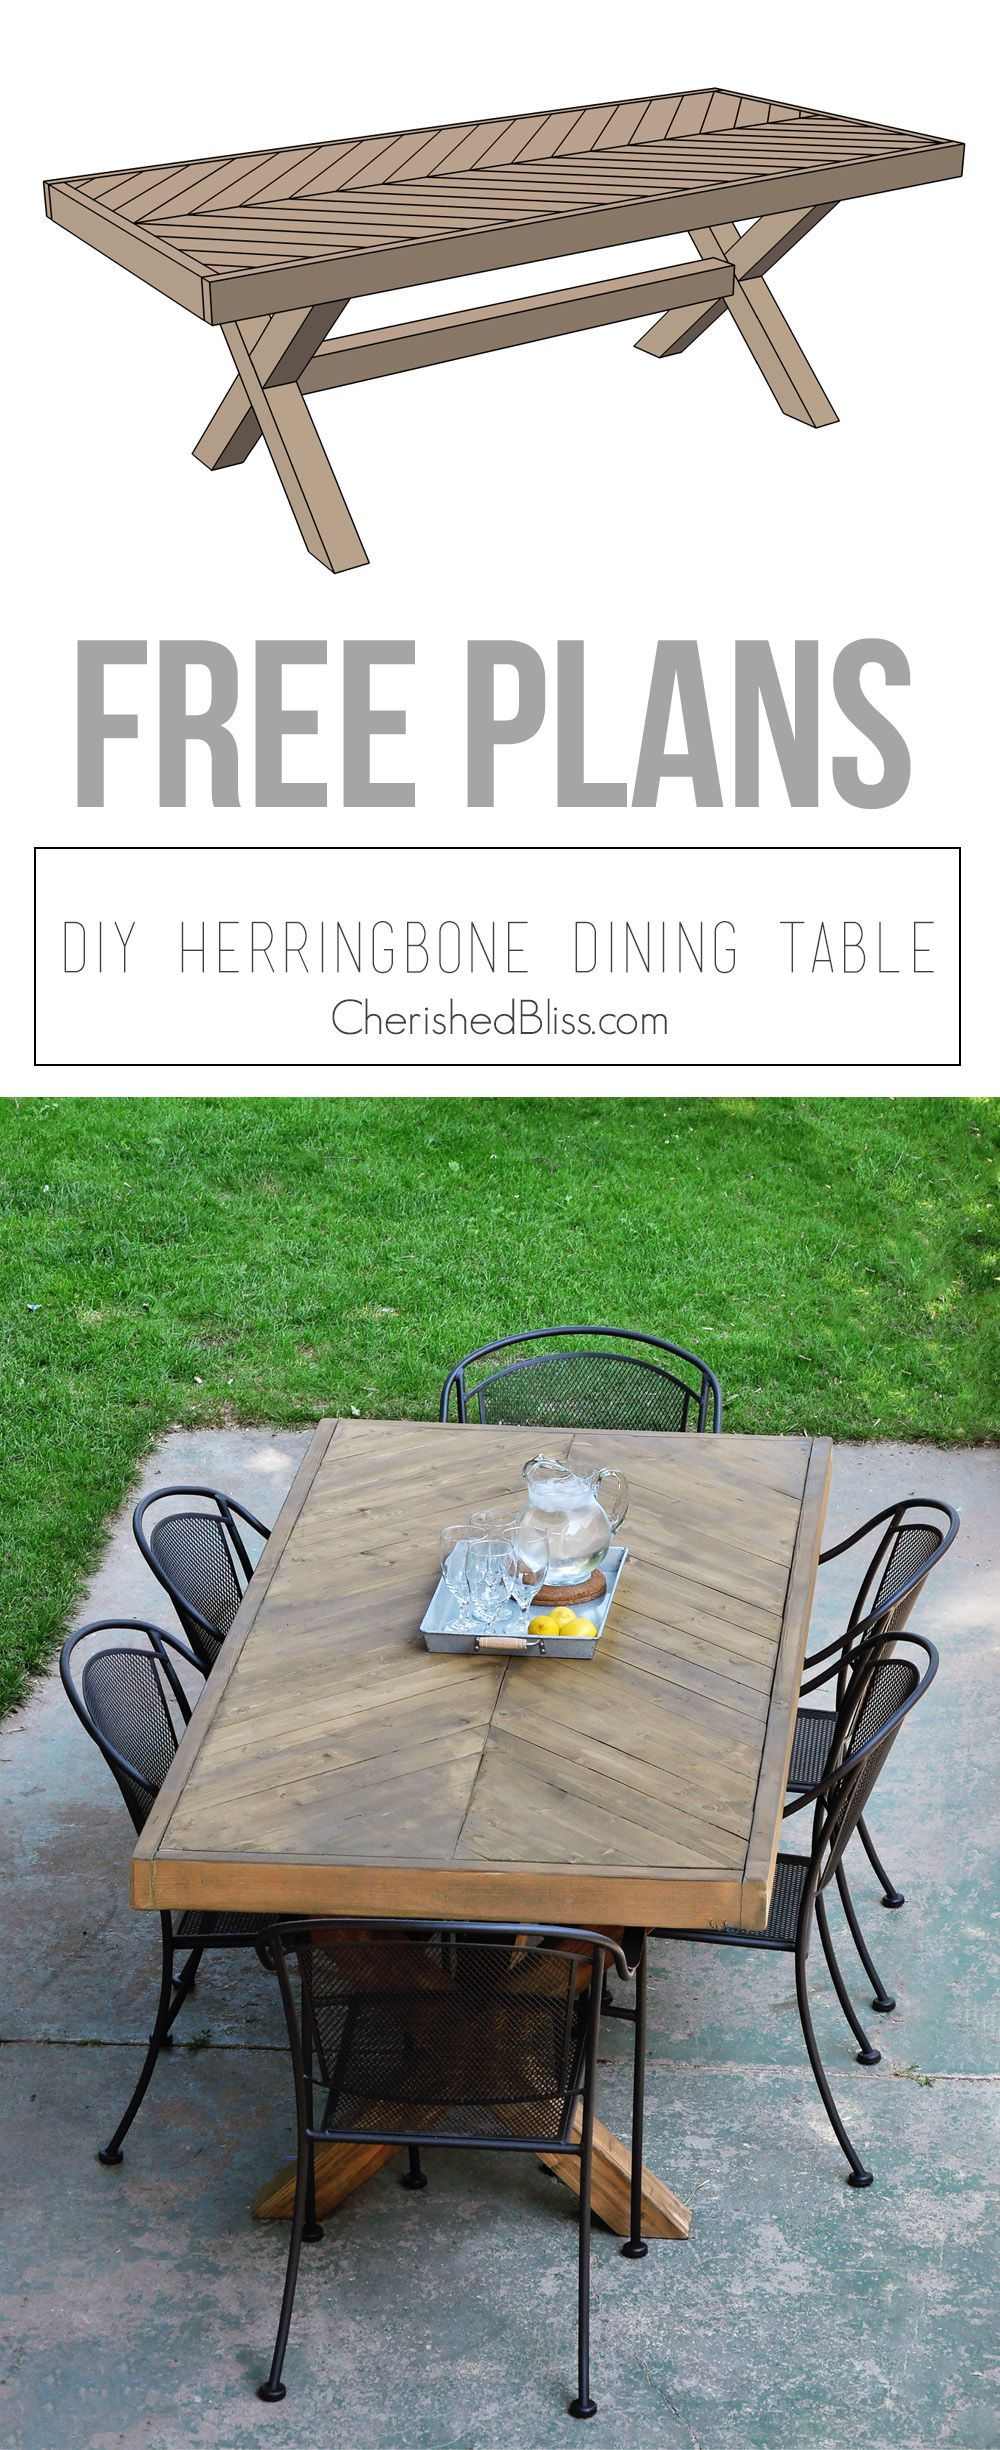 Build this diy outdoor table featuring a herringbone top and x brace legs would also make a great rustic dining room table